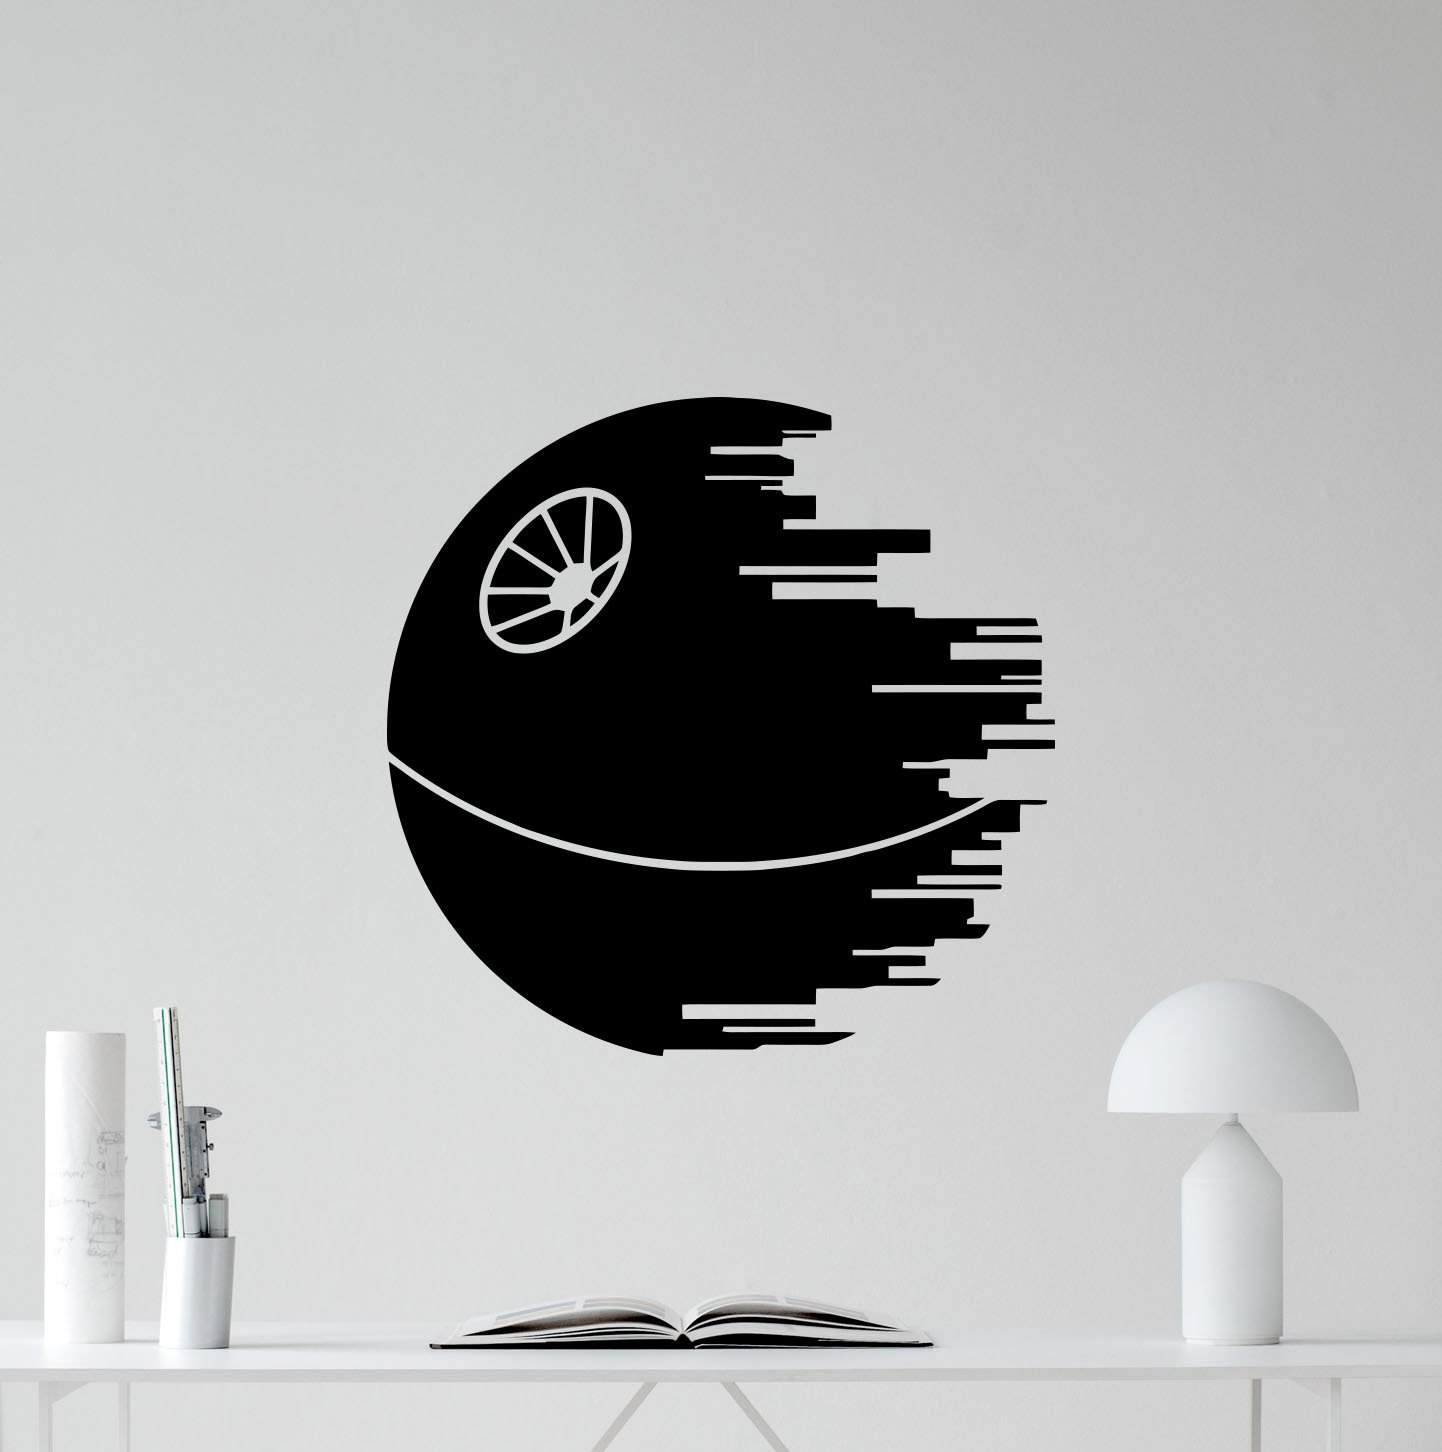 Death star wall decal star wars galaxy empire planet quote wall decals vinyl sticker kids wall art design bedroom nursery wall decor stencil mural 69bar